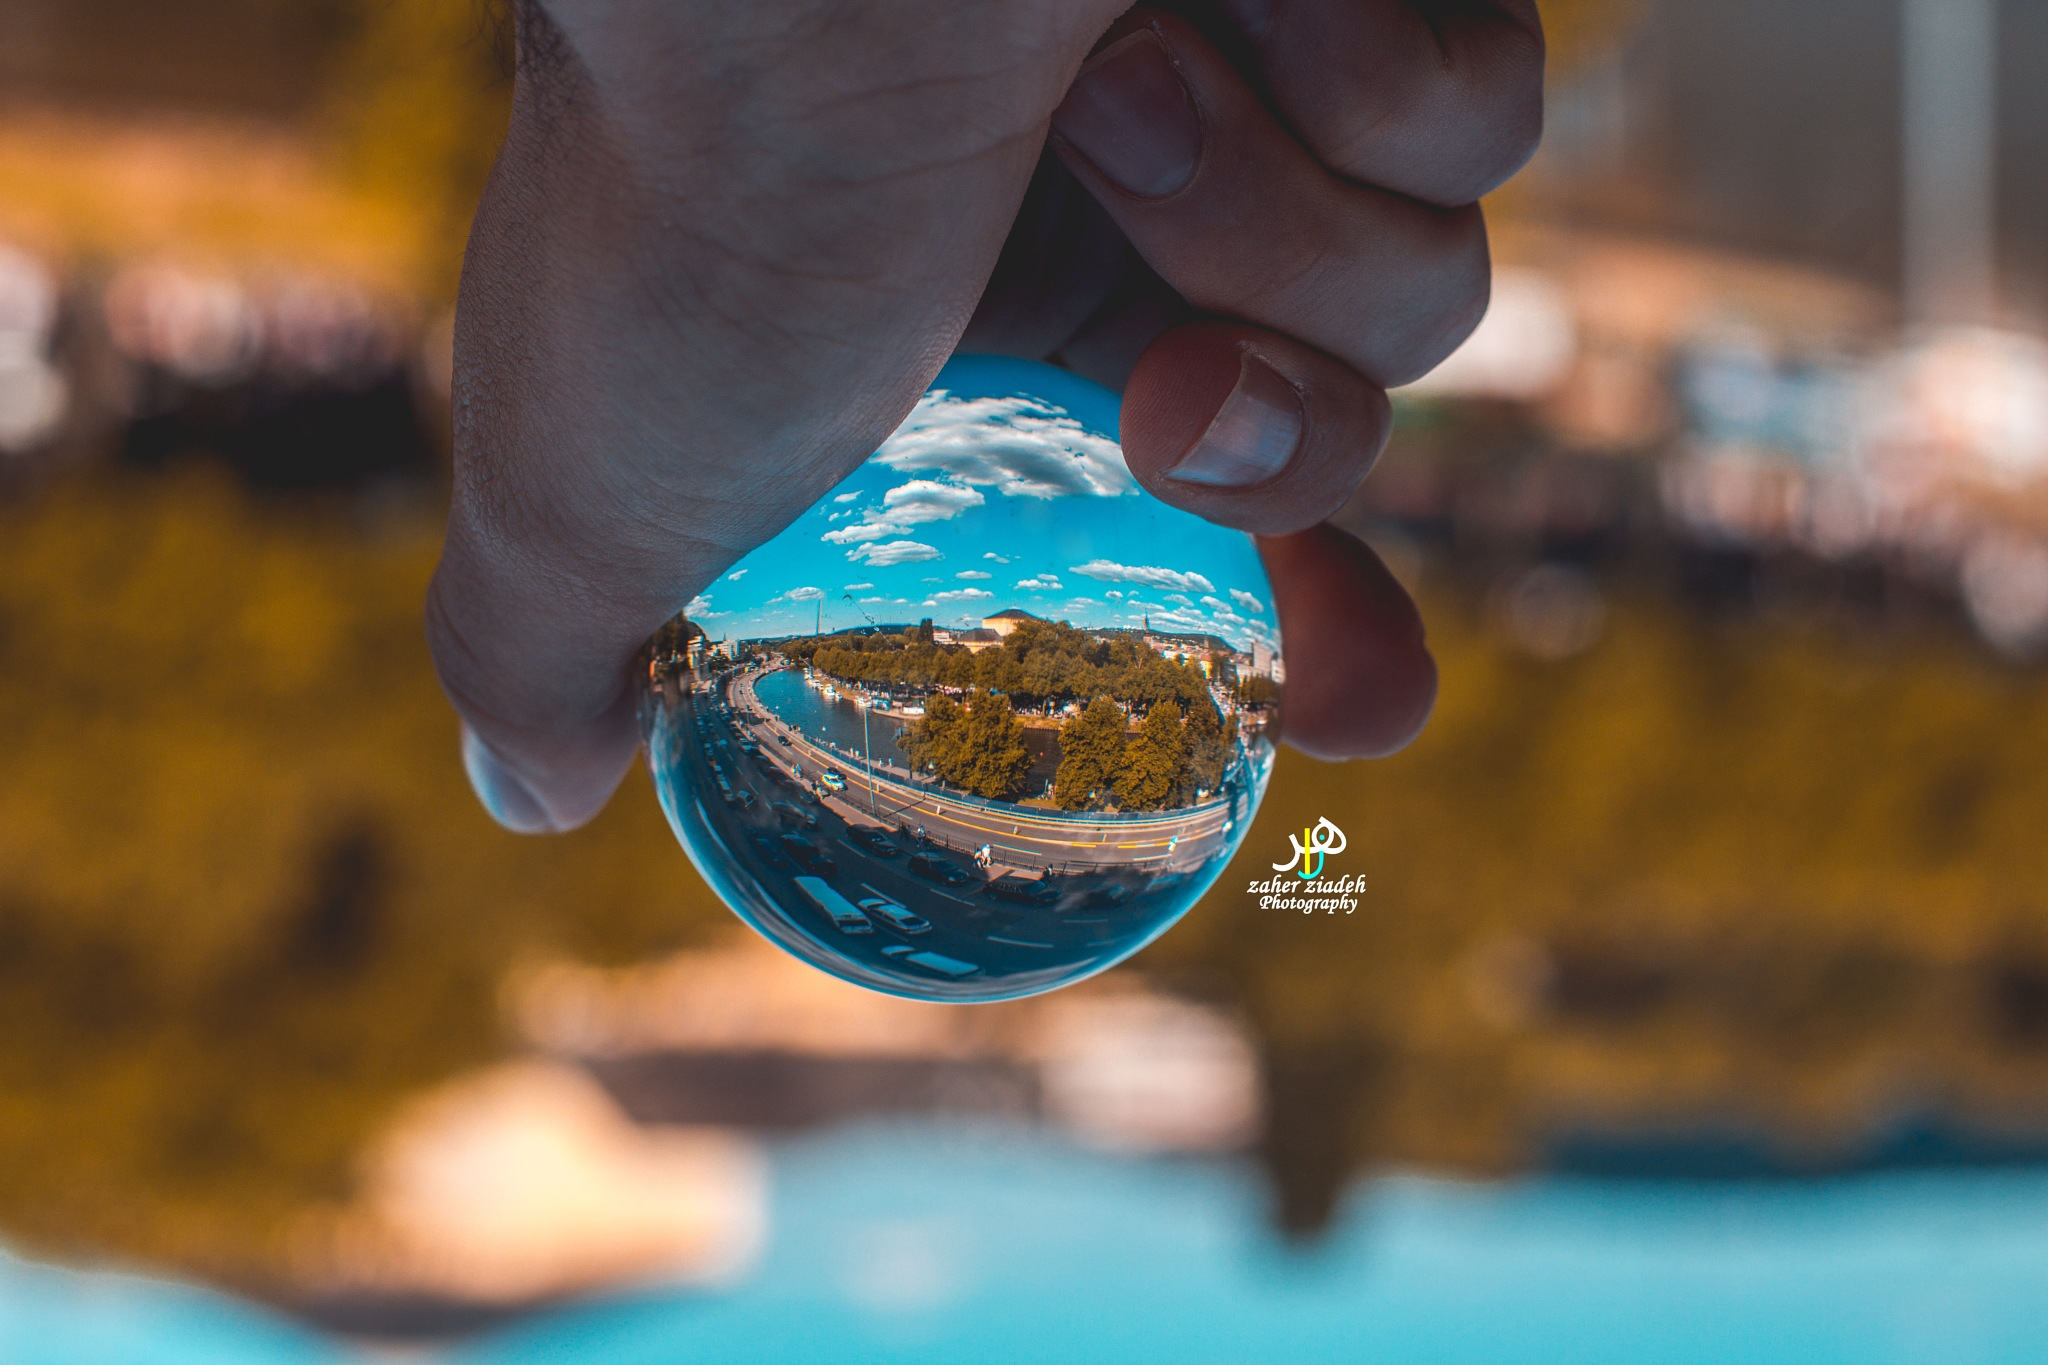 Cityscape in the ball  by Zaher Ziadeh